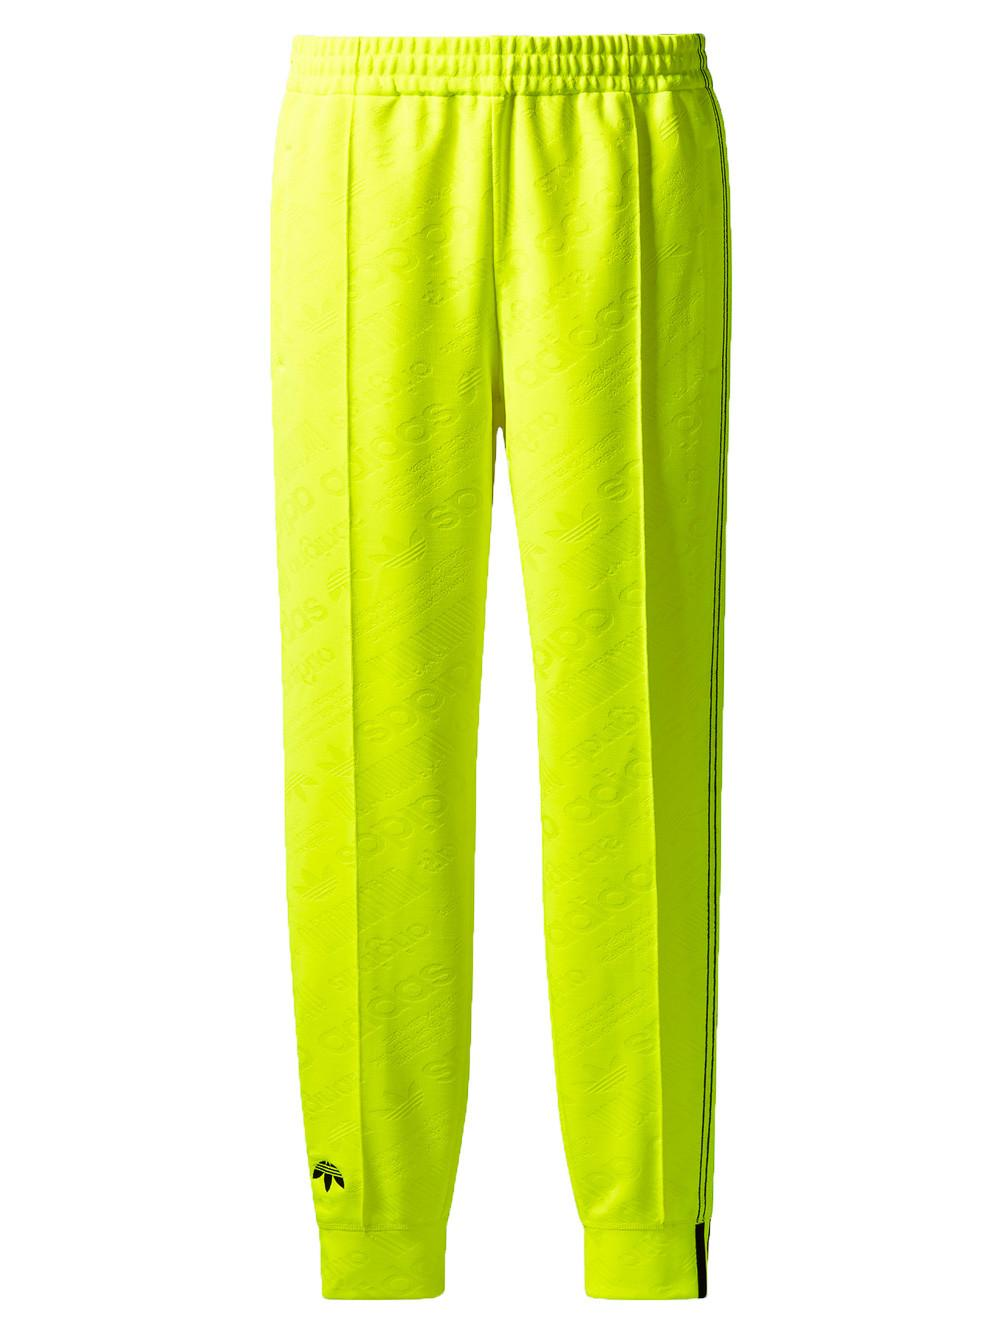 690ffc22dd82 Adidas Originals By Alexander Wang Adidas By Alexander Wang Women s Yellow  Jacquard Jogging Trousers In In